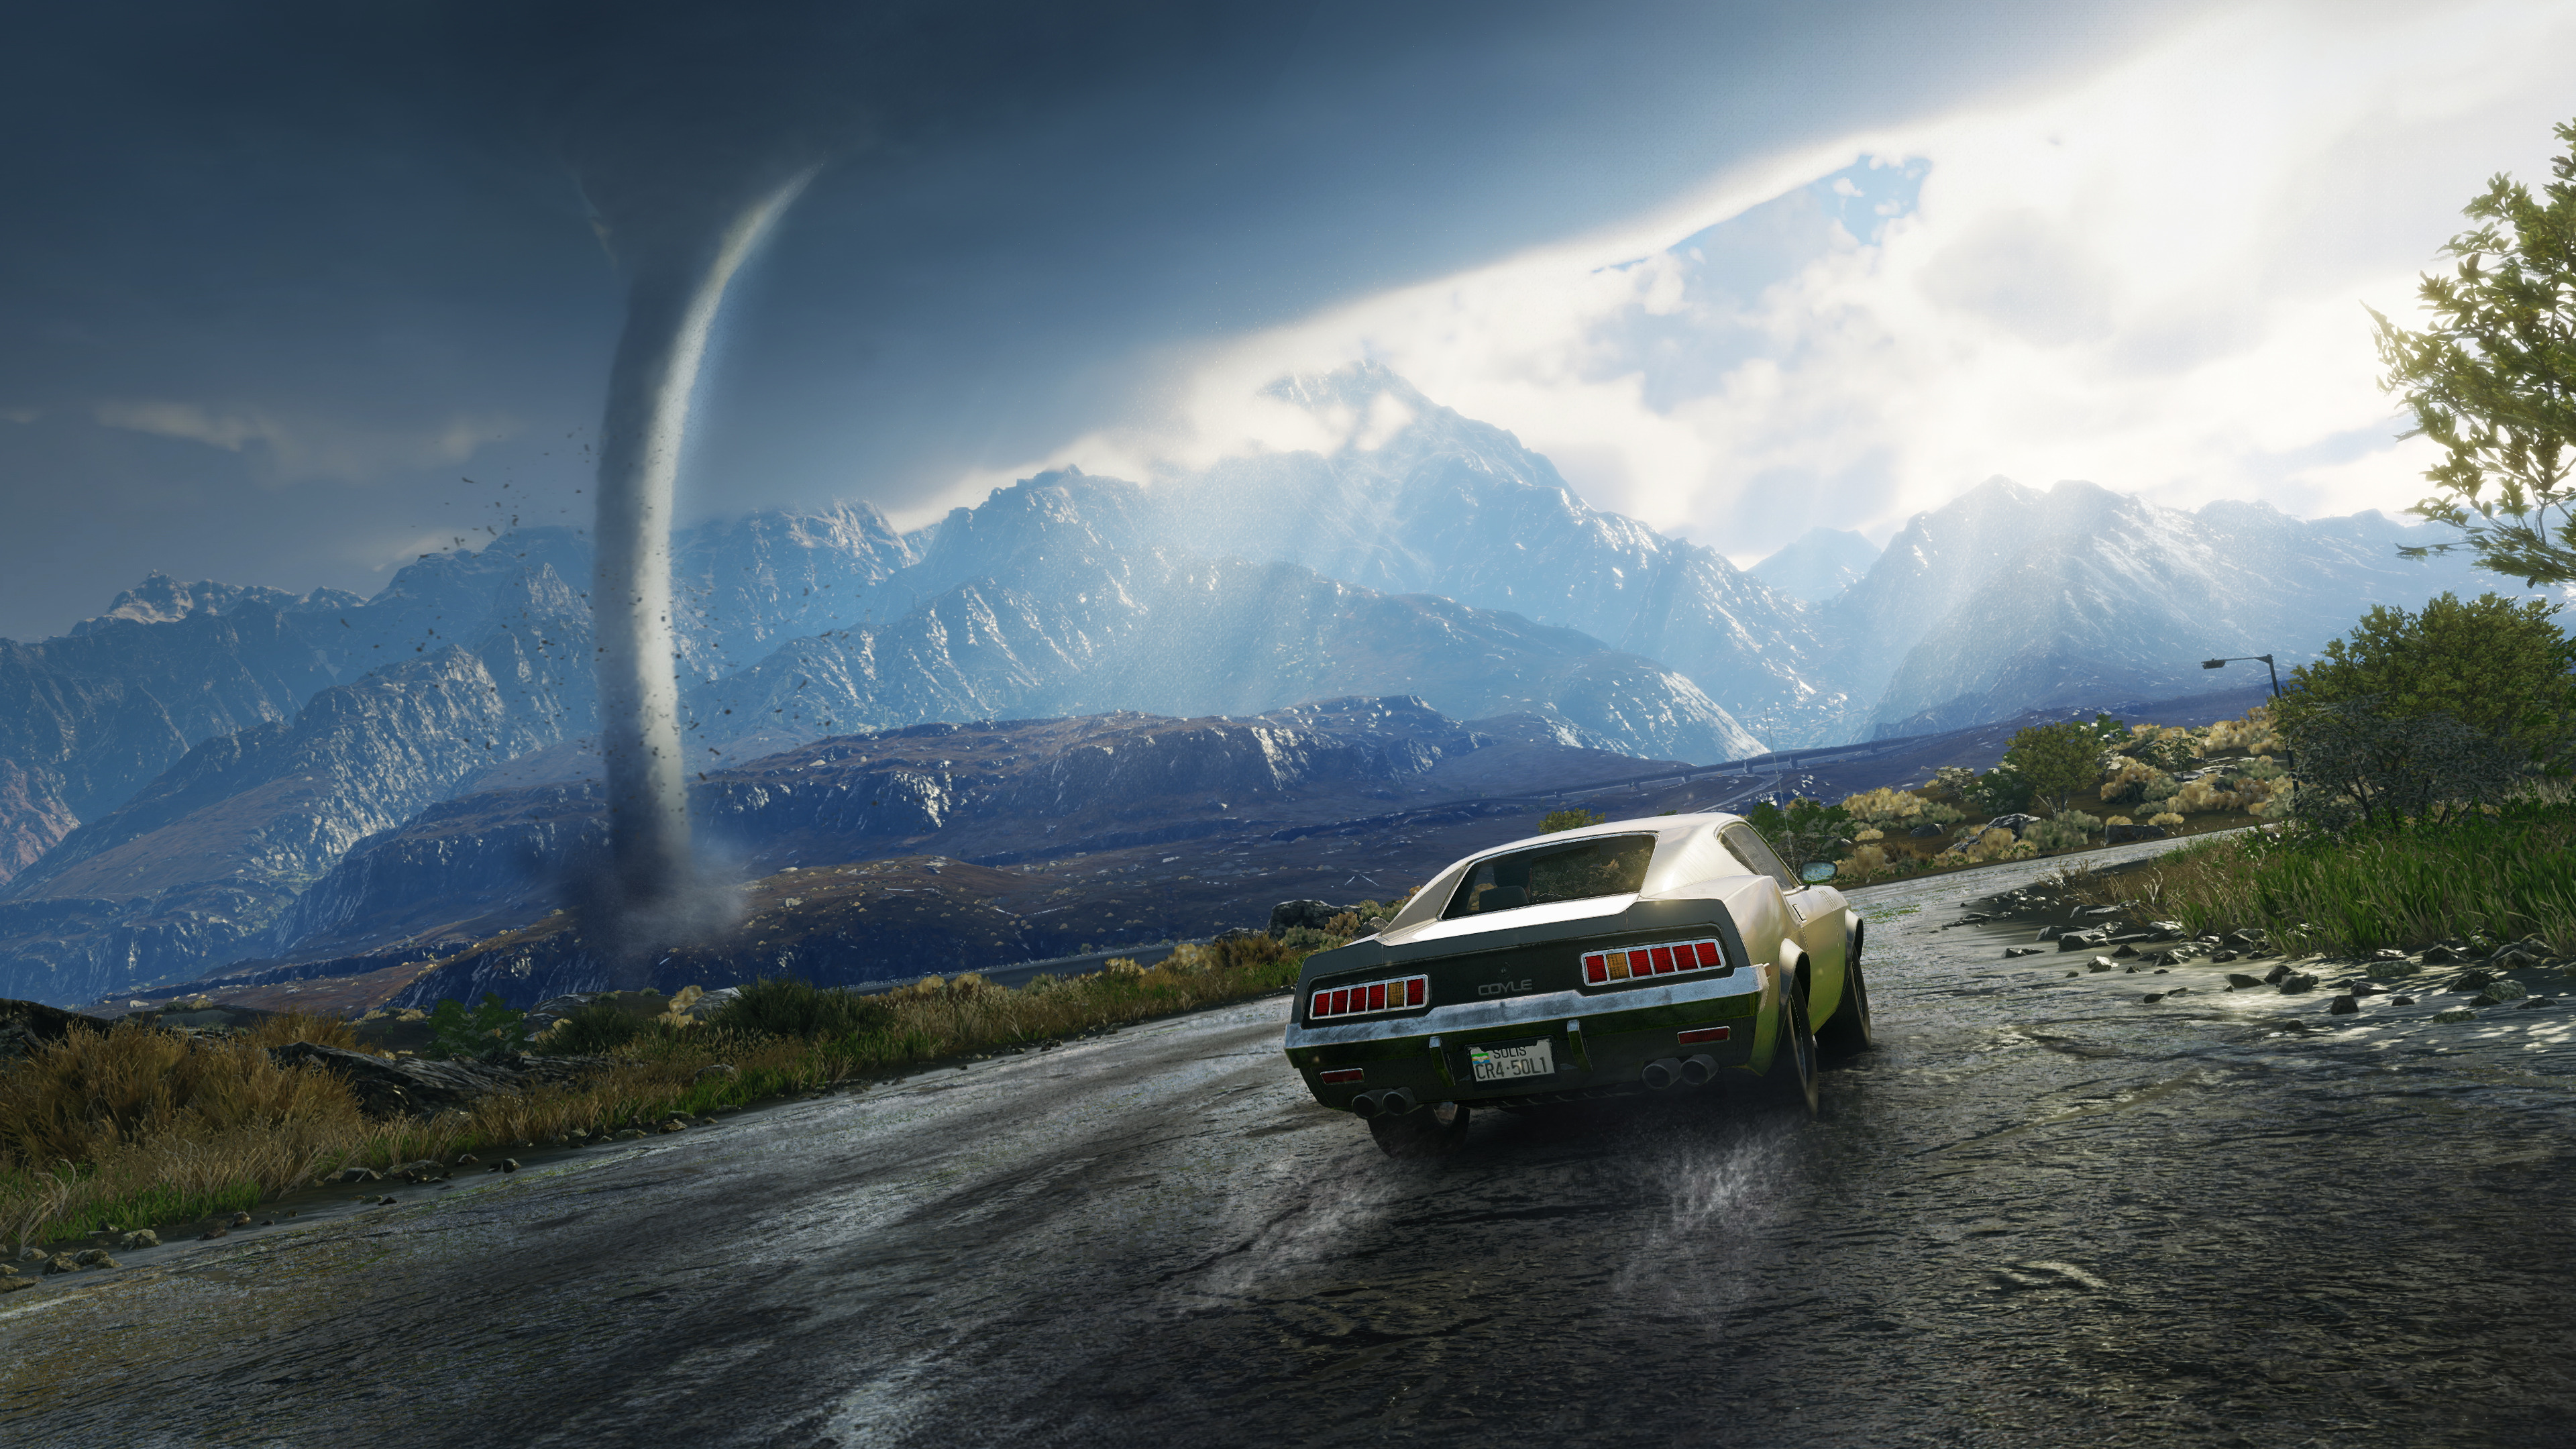 Just Cause 4 Wallpaper: Just Cause 4 Vehicles, HD Games, 4k Wallpapers, Images